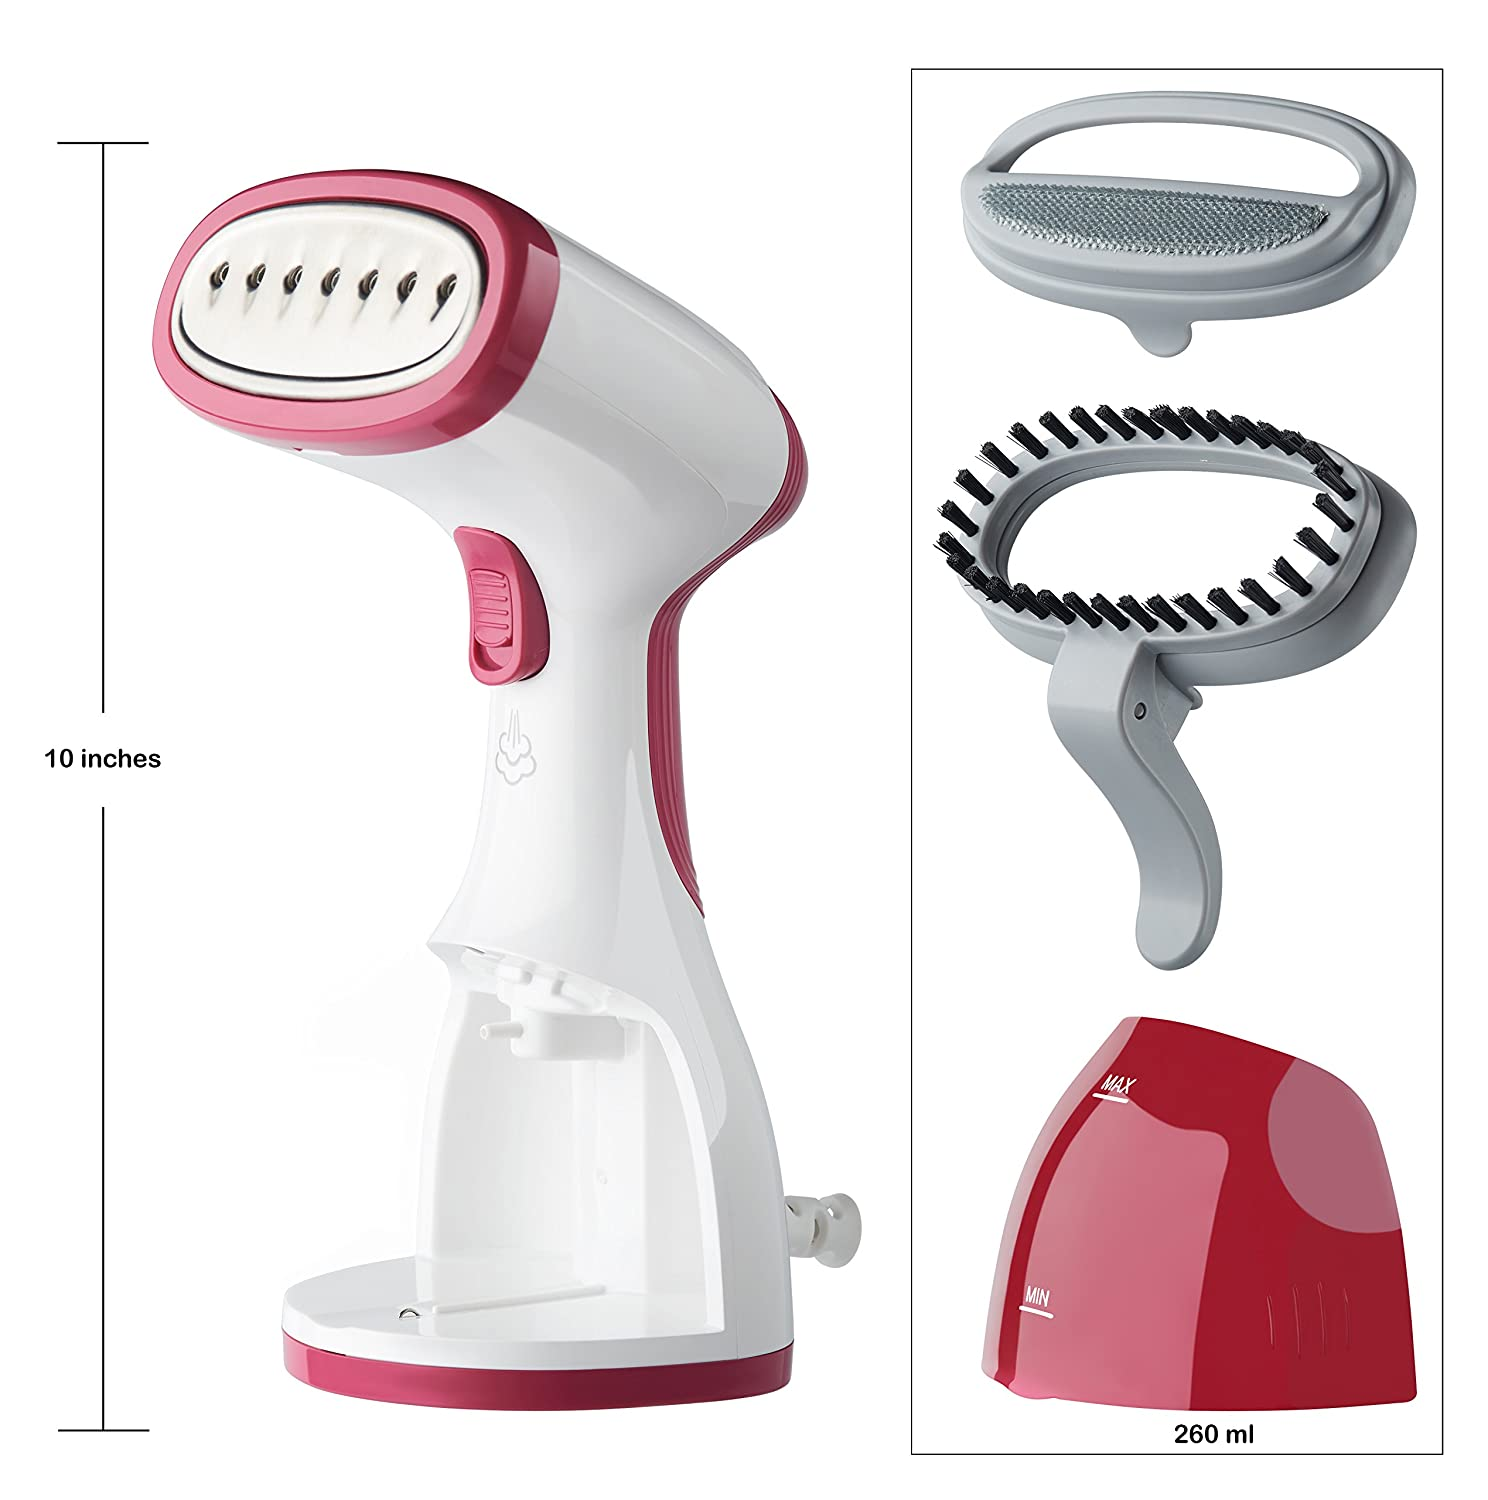 260ml Travel Size HandHeld Garments Steamers with High Capacity for Better Ironing at Home and Traveling Best Fabric Steam Portable Garment Clothes Steamer for Removing Stubborn Wrinkles